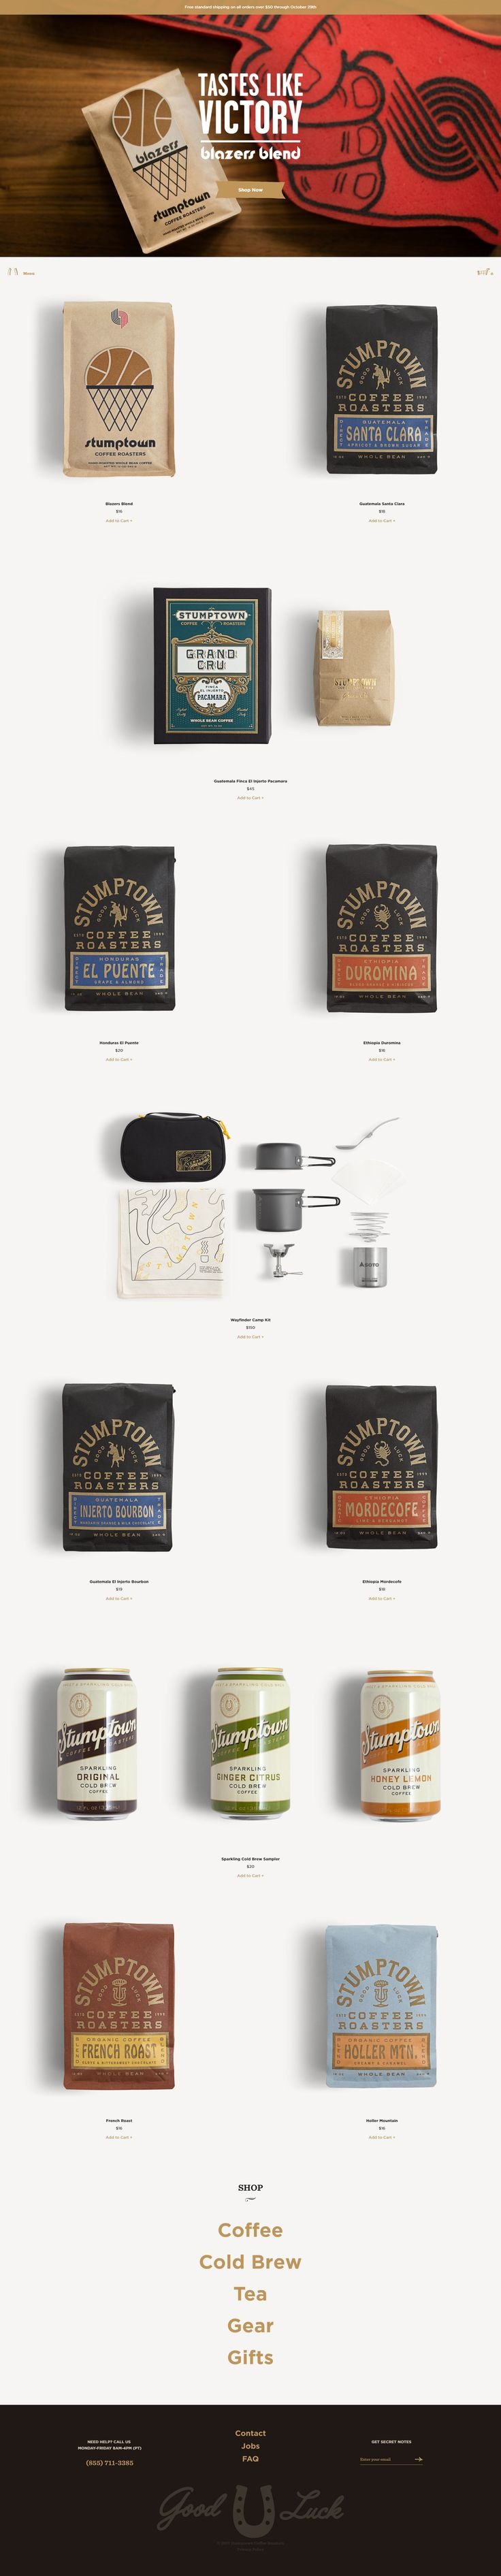 Stumptown Coffee #design #webdesign #inspiration